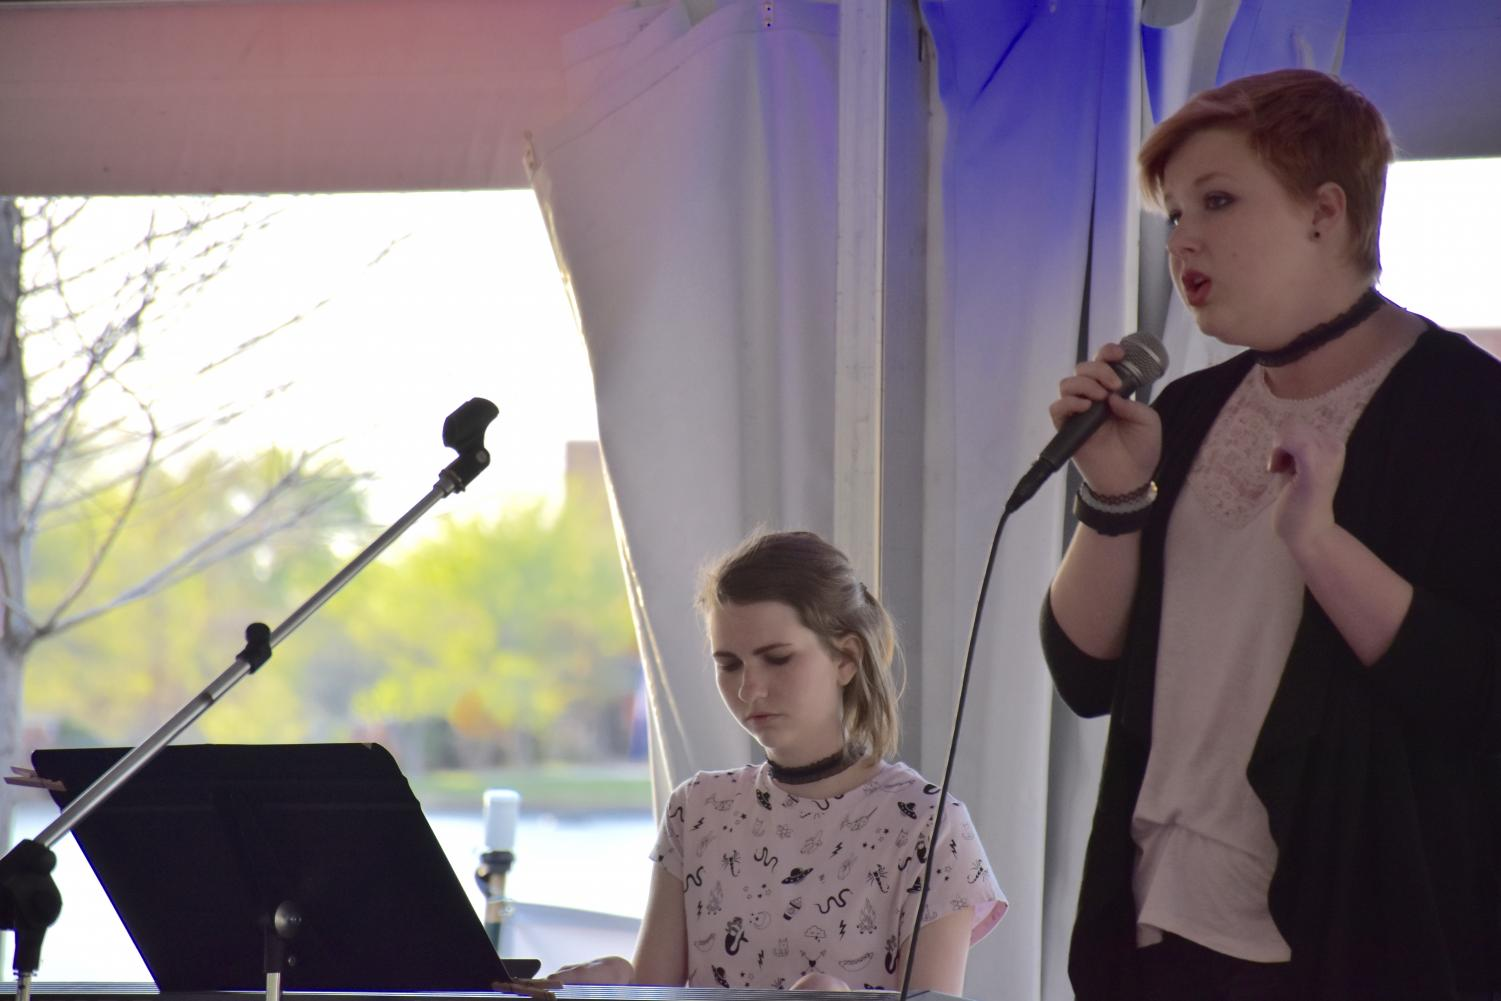 Allie Arnold '18 performed in last year's ISAS acoustic coffee house with Ainsley Dobson '18. Arnold will perform again this year and play